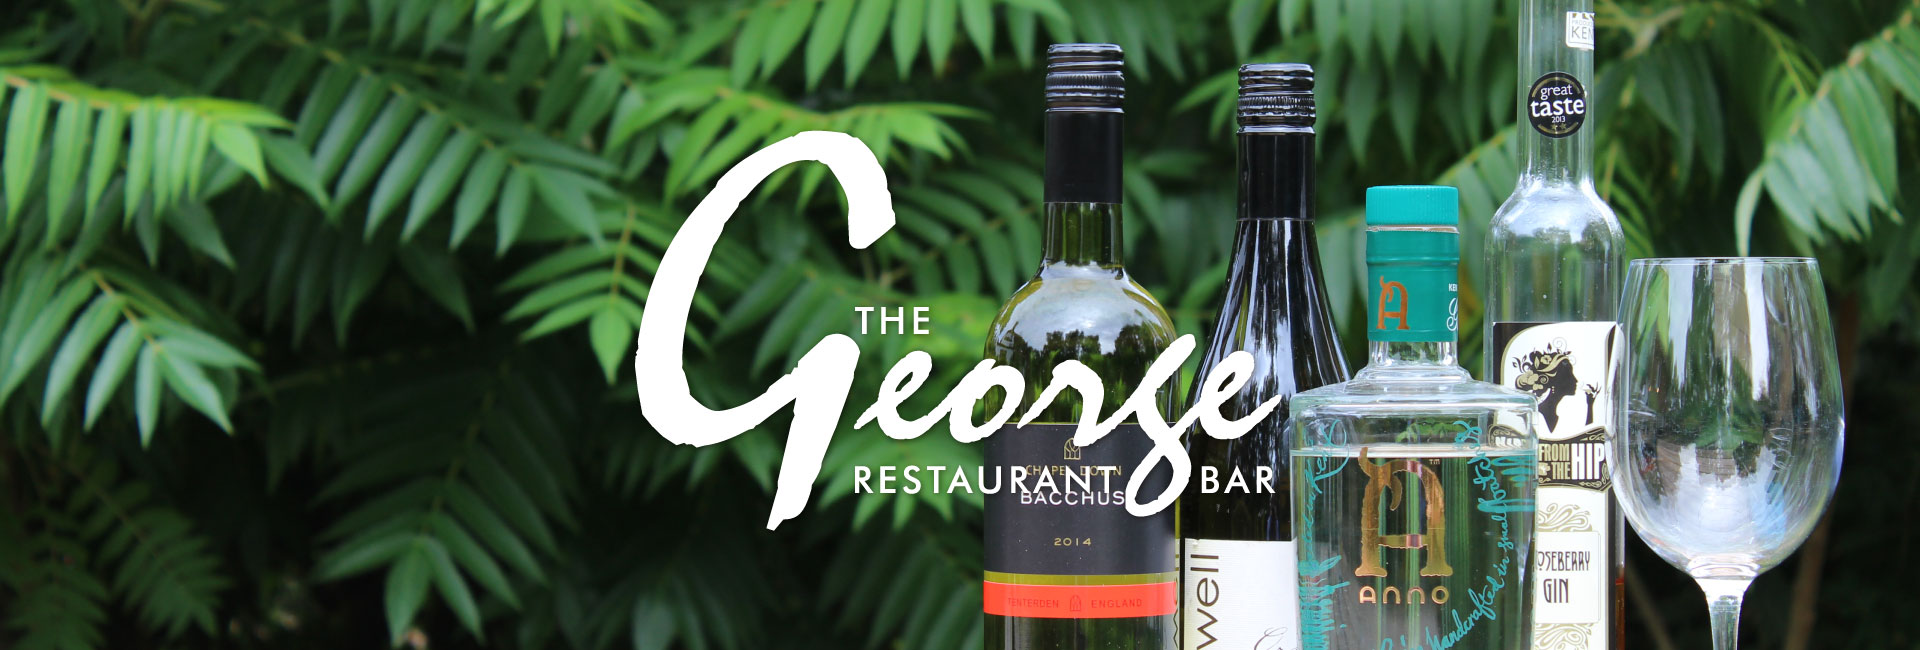 News from The George Restaurant & Bar Molash